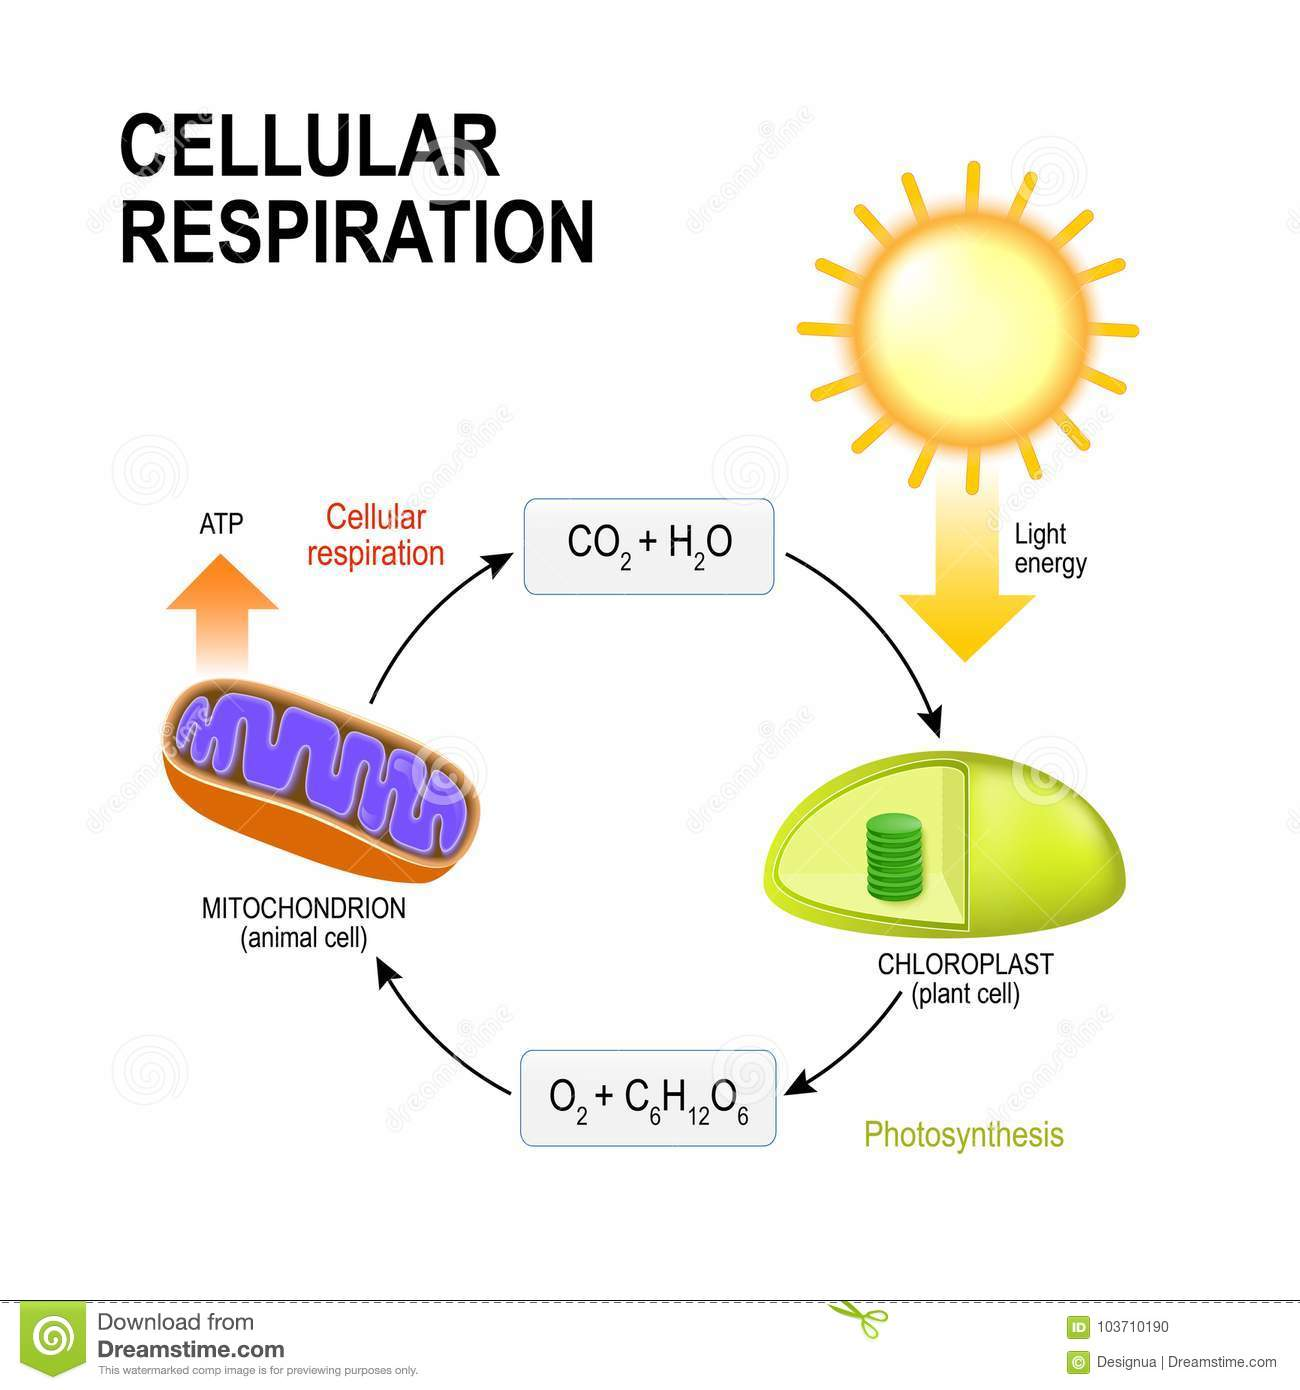 How are photosynthesis and aerobic cellular respiration similar